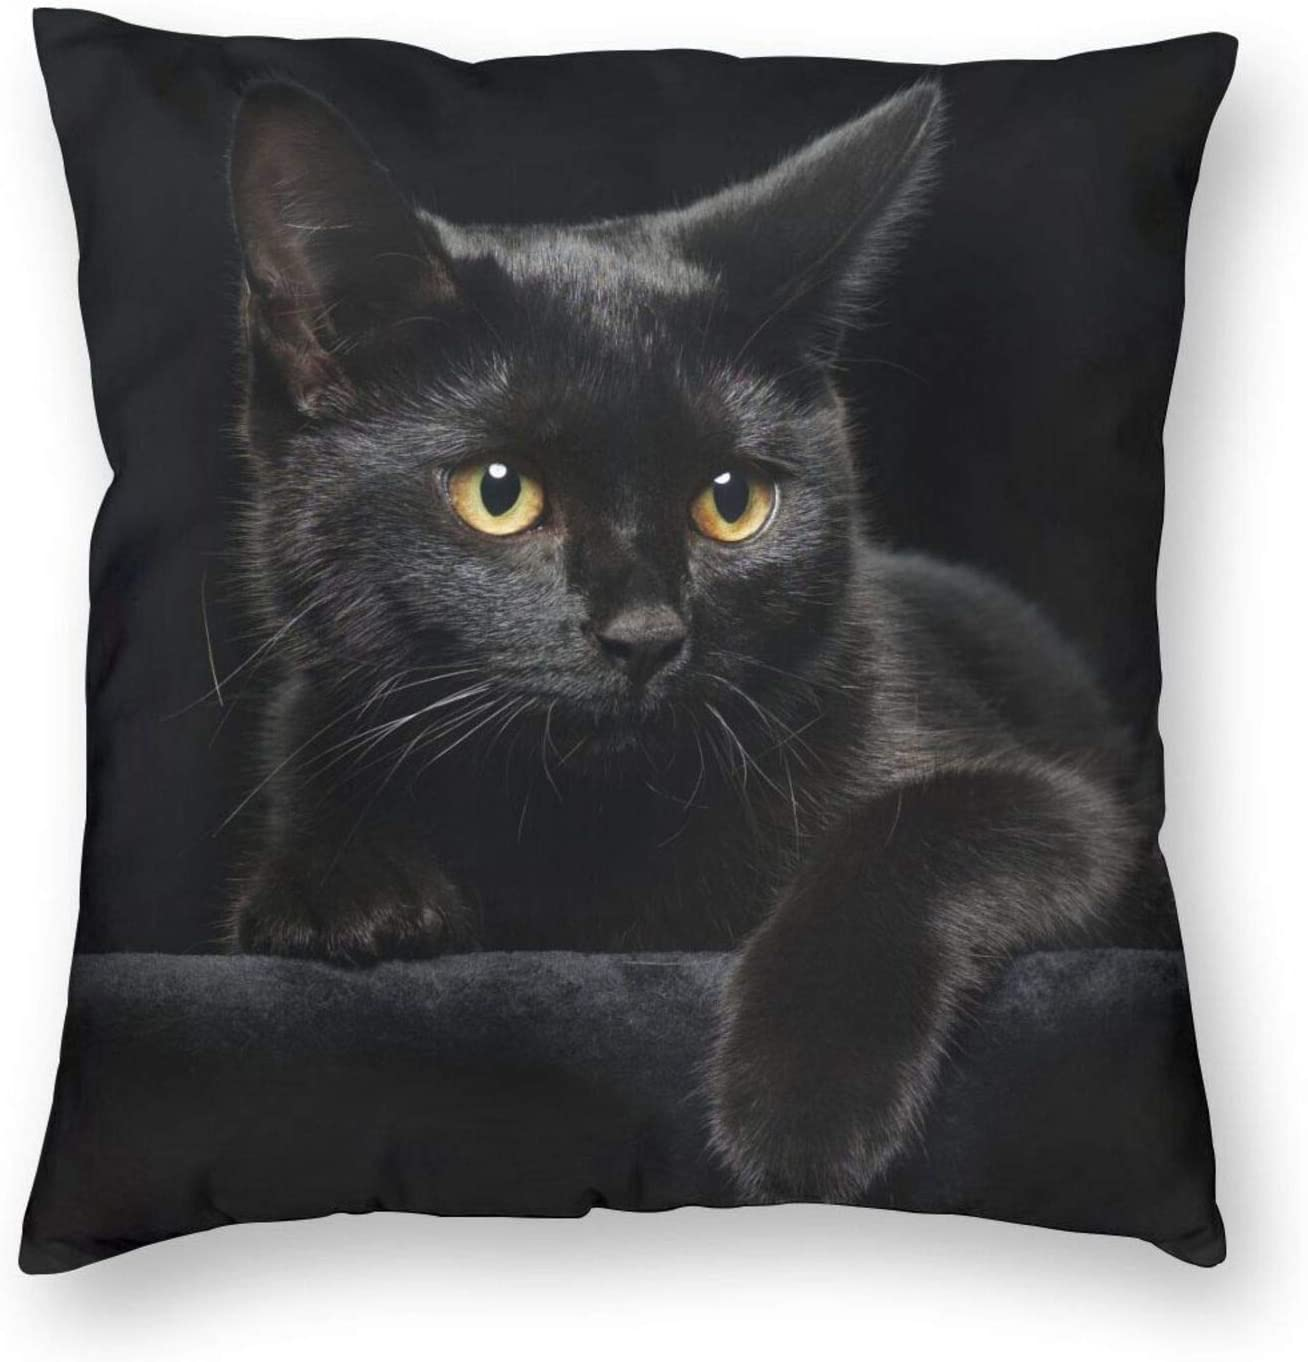 Yaateeh Cute Black Cat with Yellow Eyes Decorative Throw Pillow Covers 18x18 Inch Pillows Case Square Cushion Cover Cases Pillowcase with Zipper Sofa Home Decor for Couch Bed Patio Car